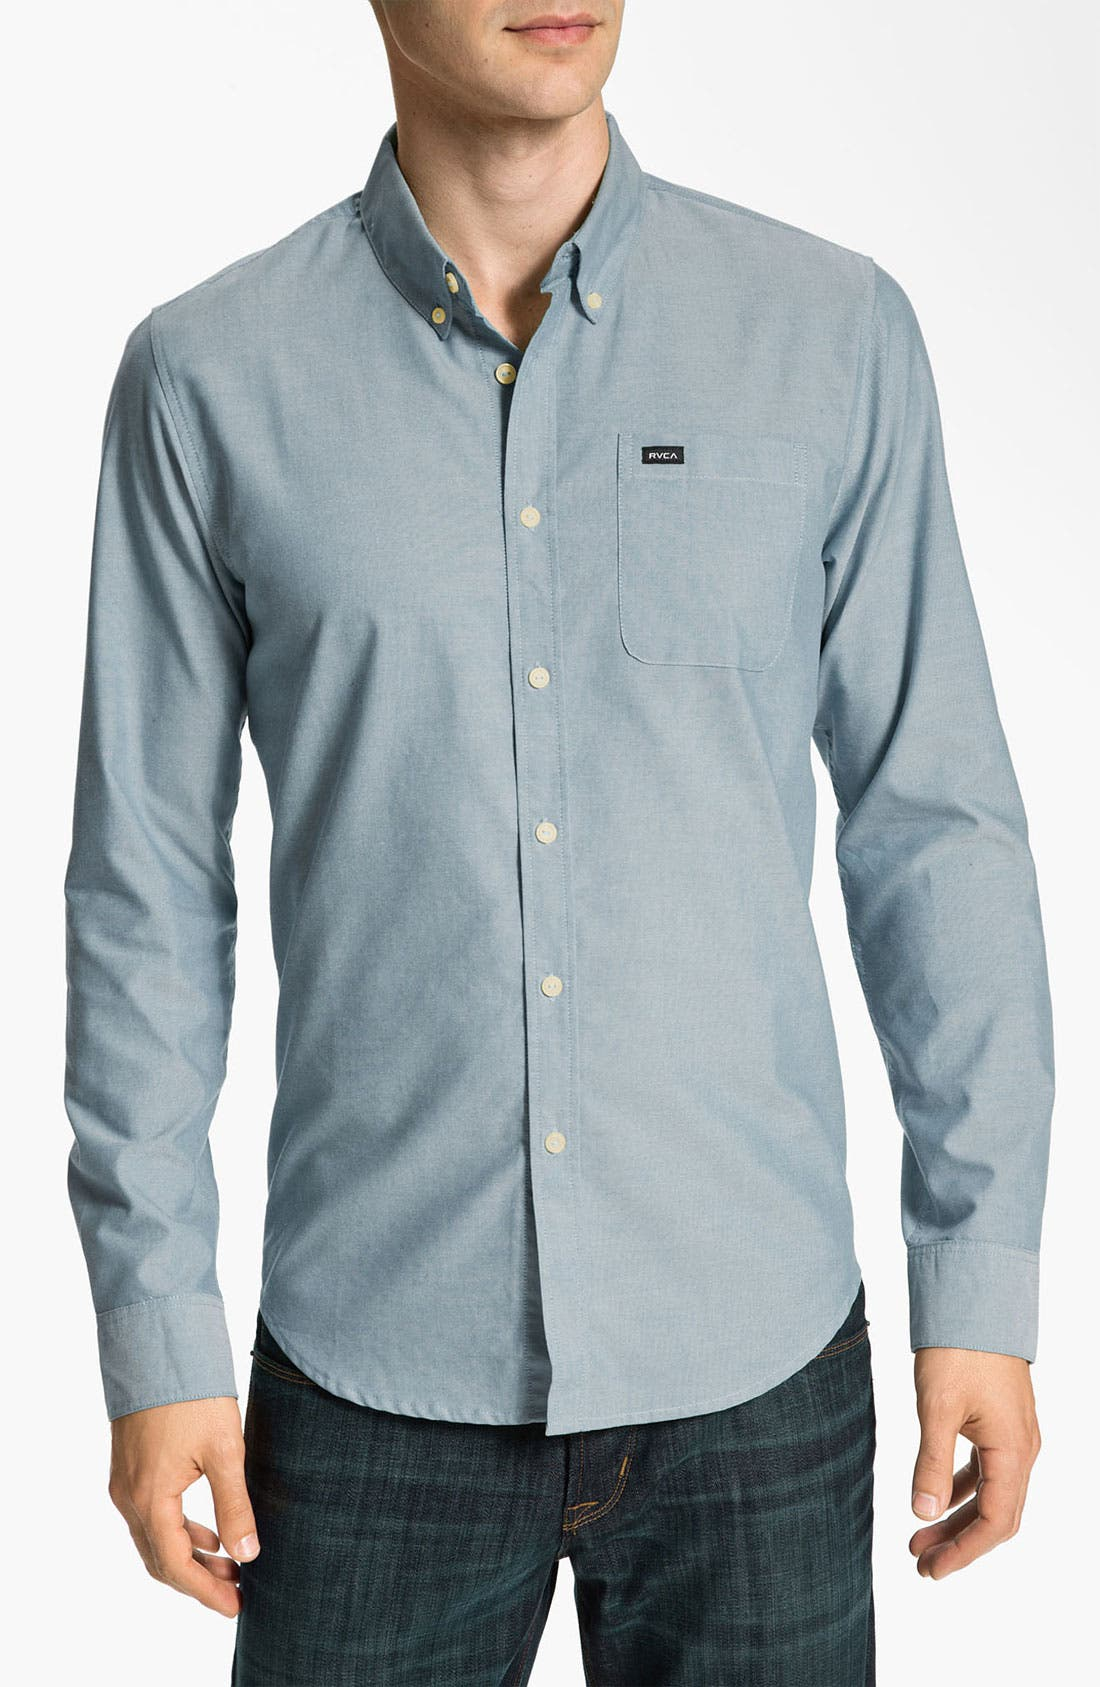 Main Image - RVCA 'That'll Do' Oxford Shirt